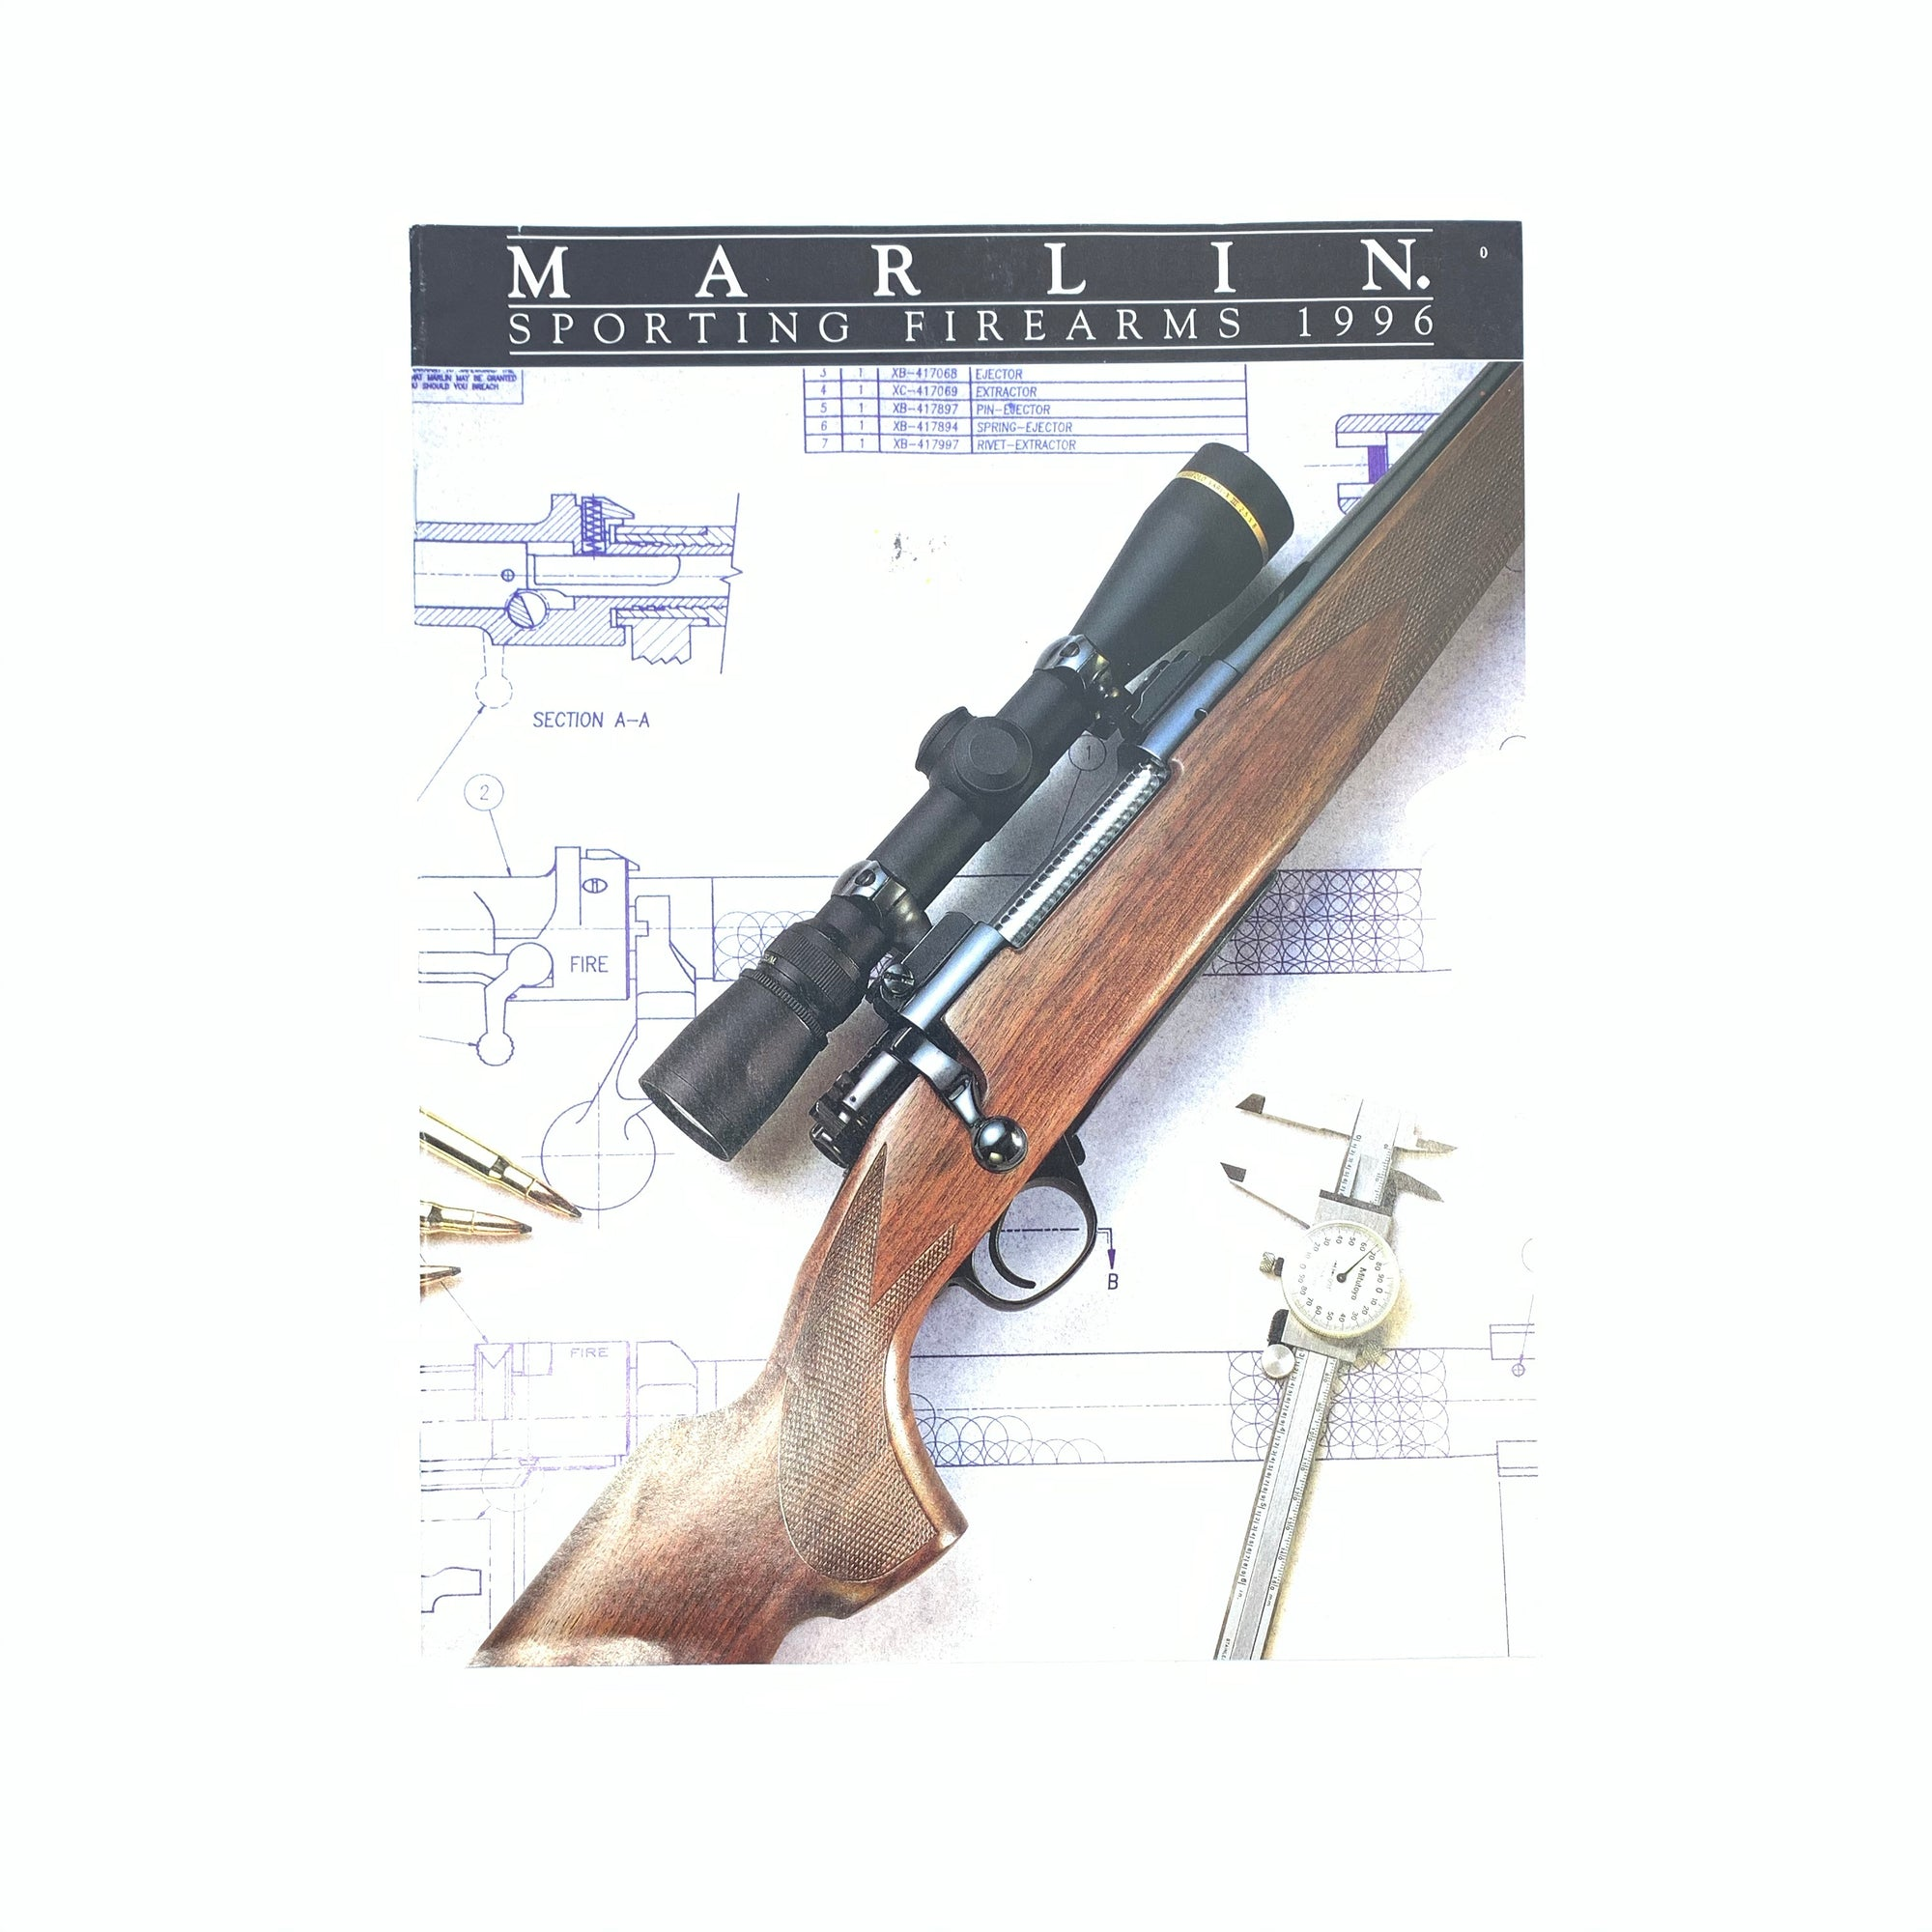 Marlin 1996 Sporting Firearms Catalogue